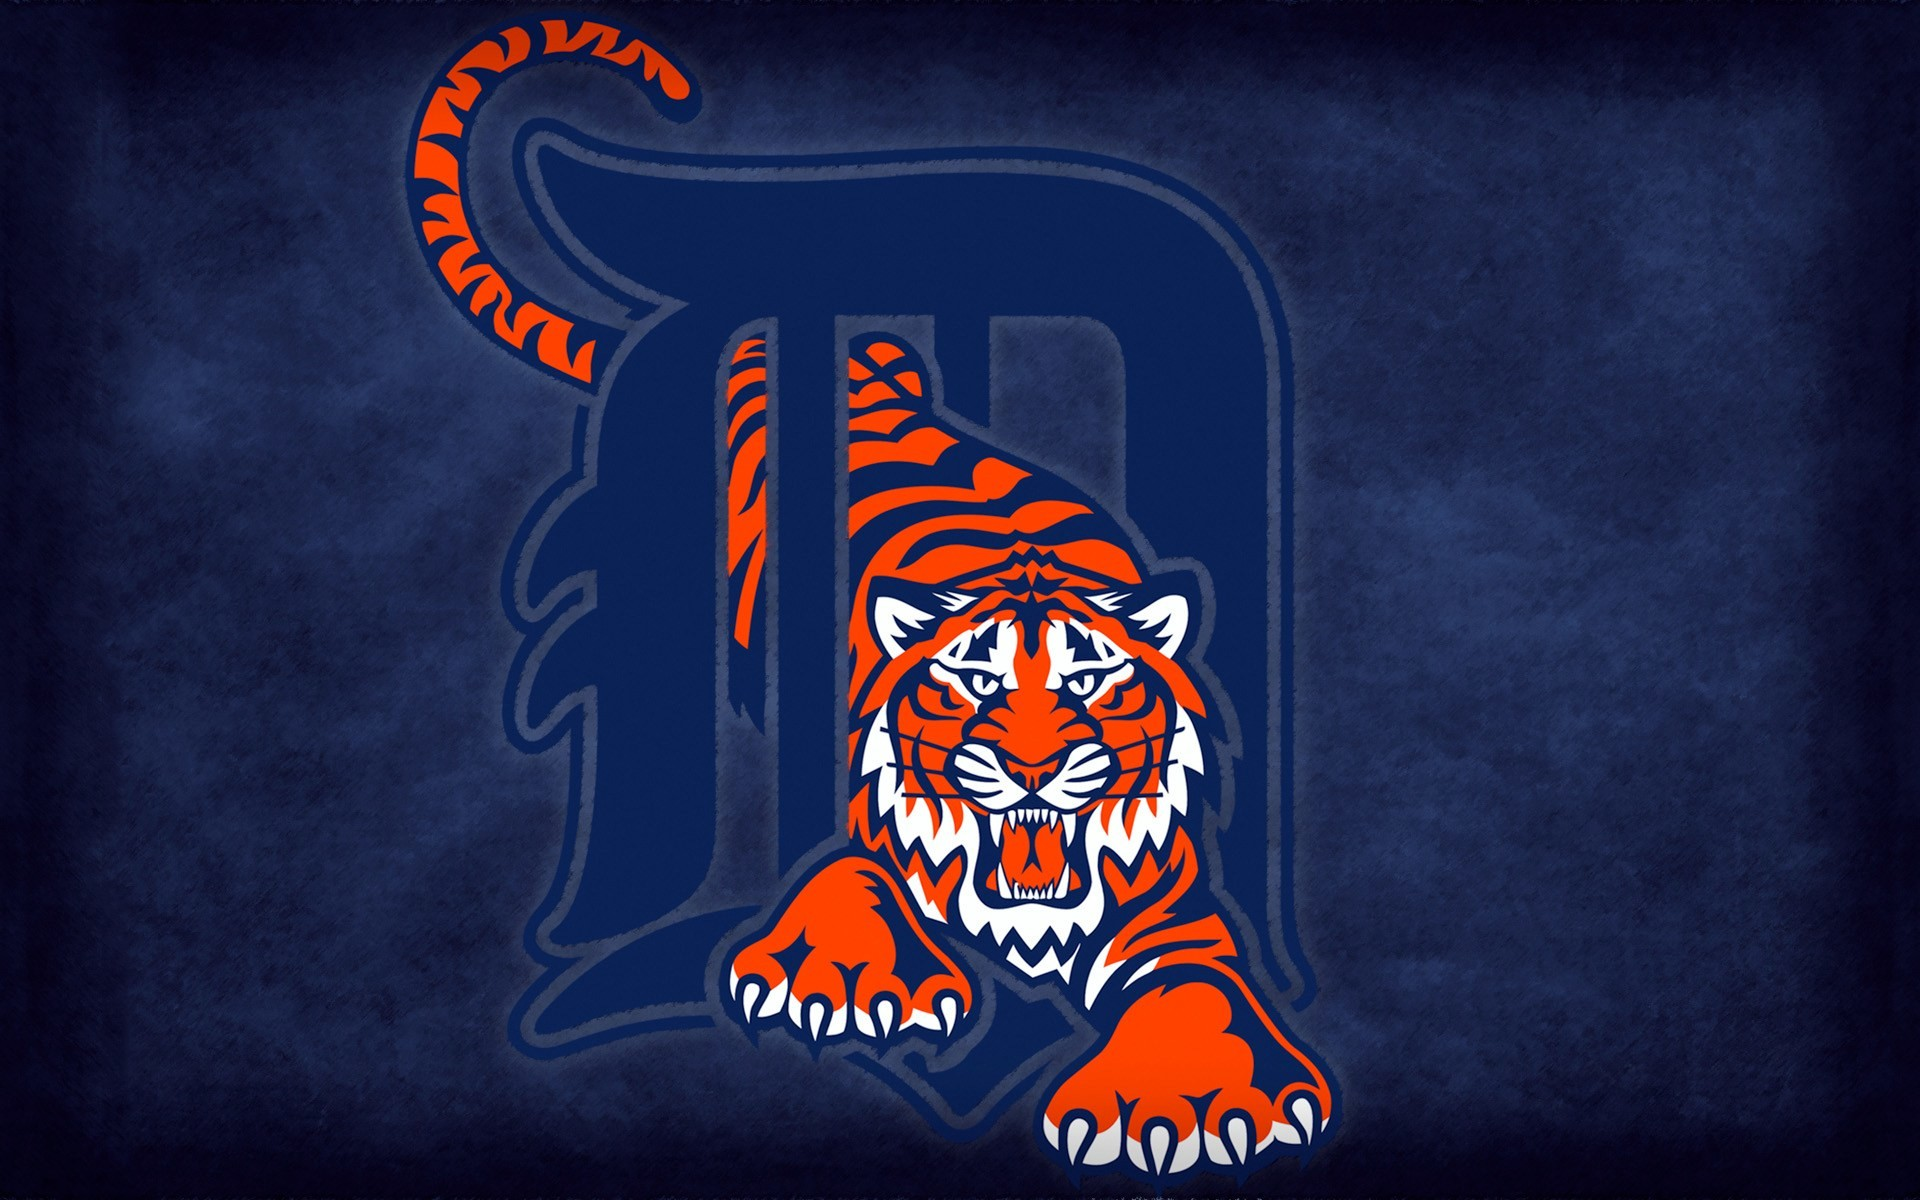 1920x1200 ... Lsu Tigers Wallpaper Free Download Elegant Beautiful Backgrounds Free  Detroit Tigers Wallpaper Amazing